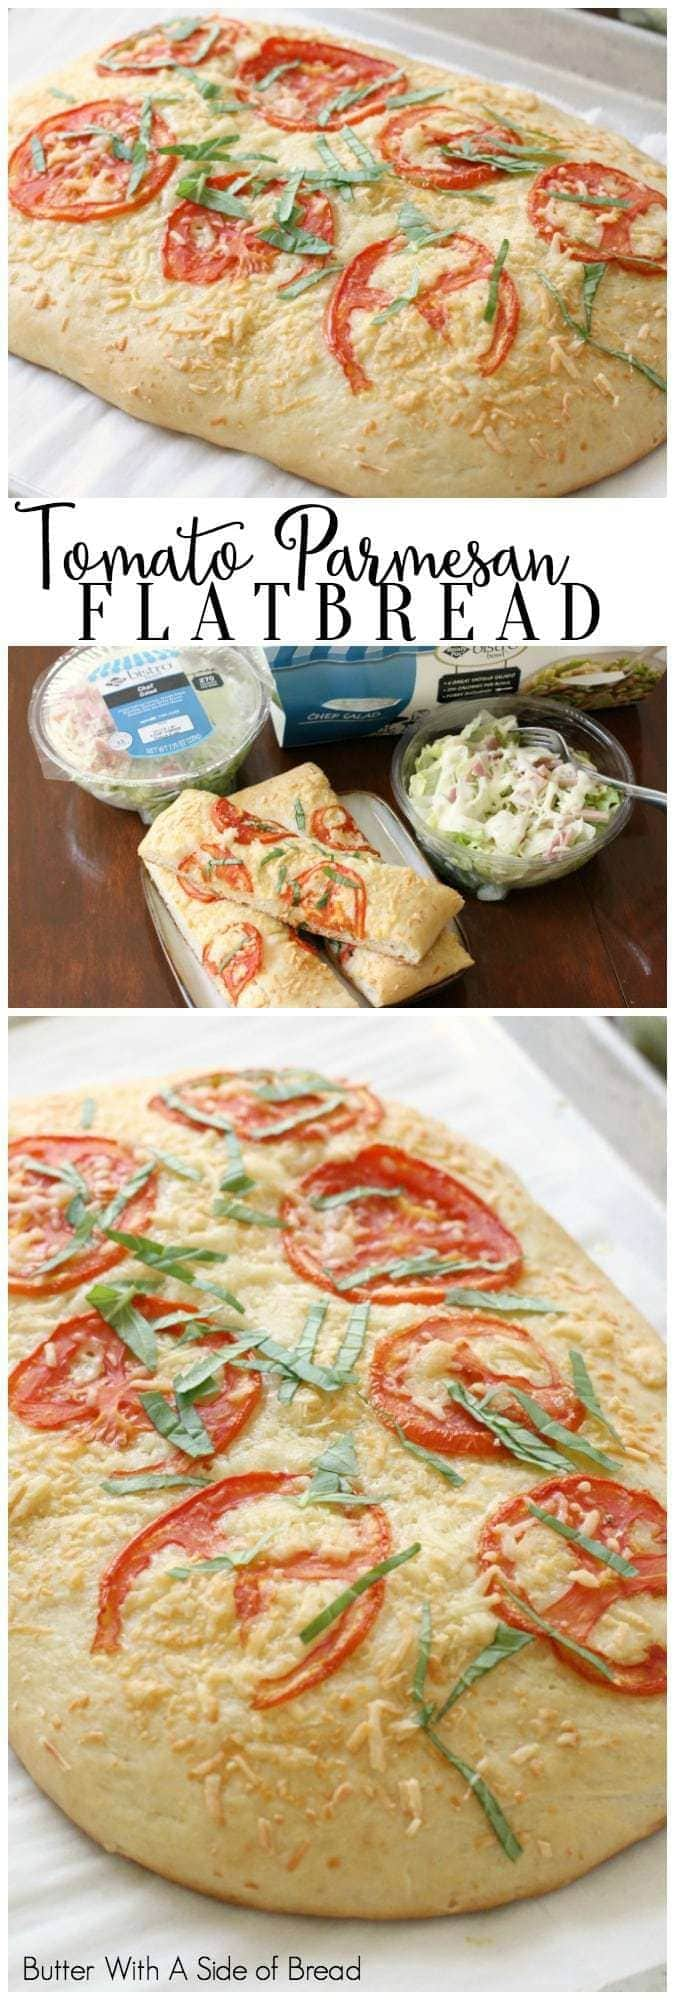 Tomato Parmesan Flatbread recipe made from scratch and topped with fresh tomato, basil and Parmesan cheese. Soft & flavorful homemade flatbread to go alongside dinner.